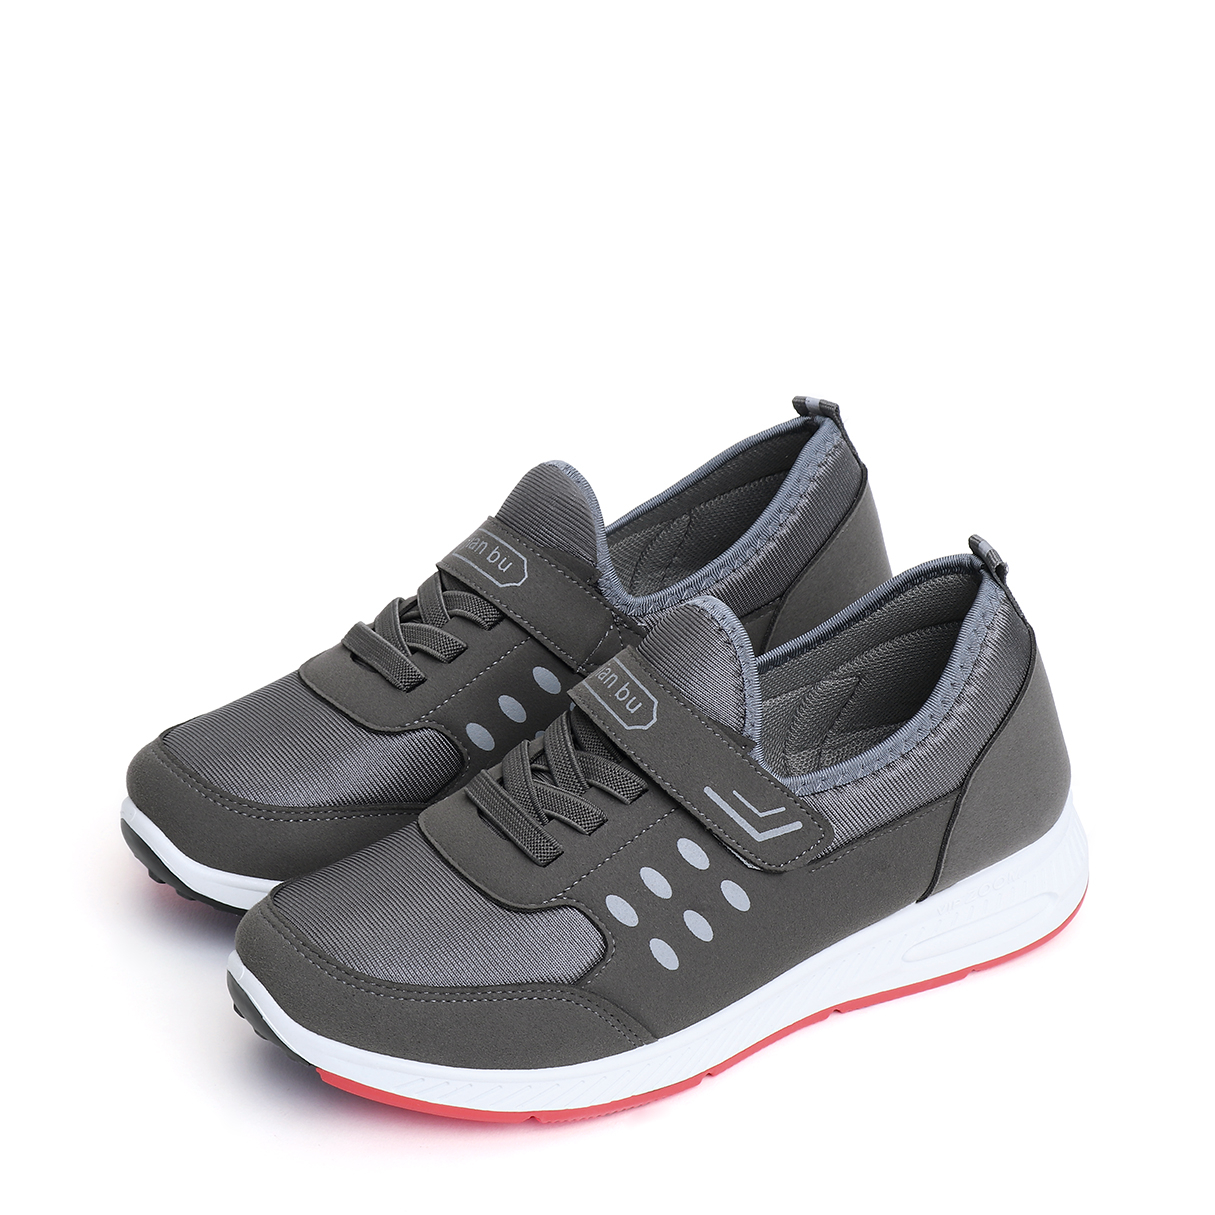 Grey Casual Breathable Round Toe Slip On Shoes